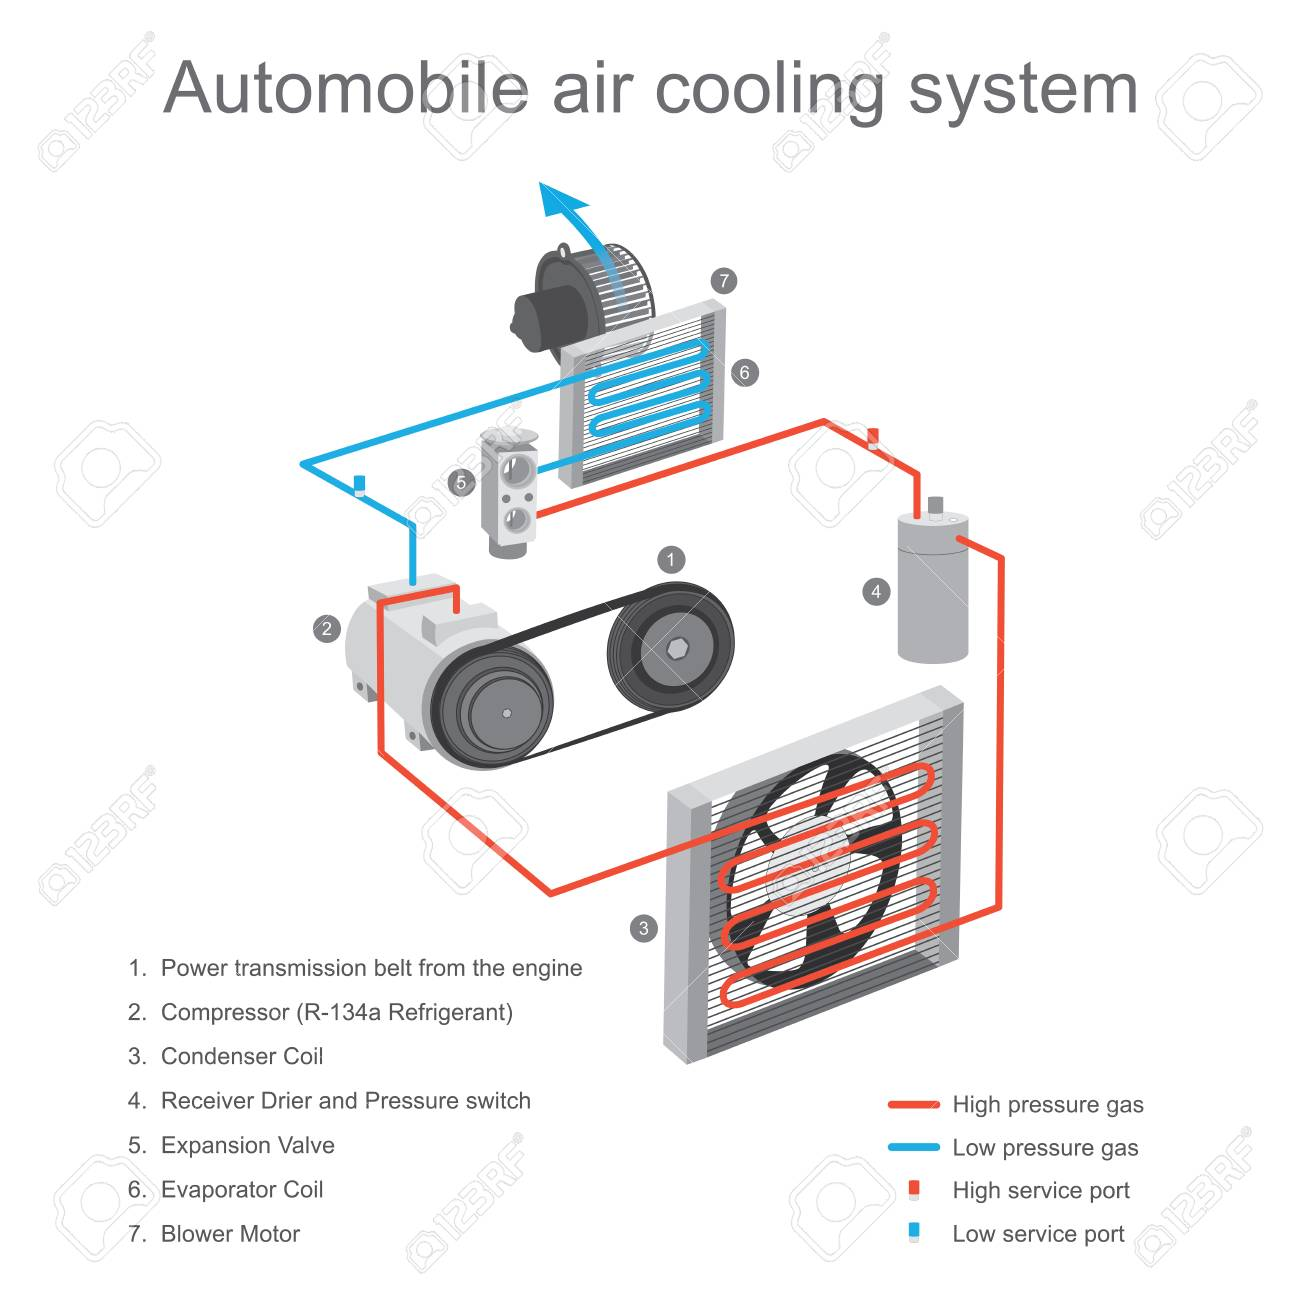 Car Cooling System >> The Air Cooling System In The Car Cabin Is Primarily Used To